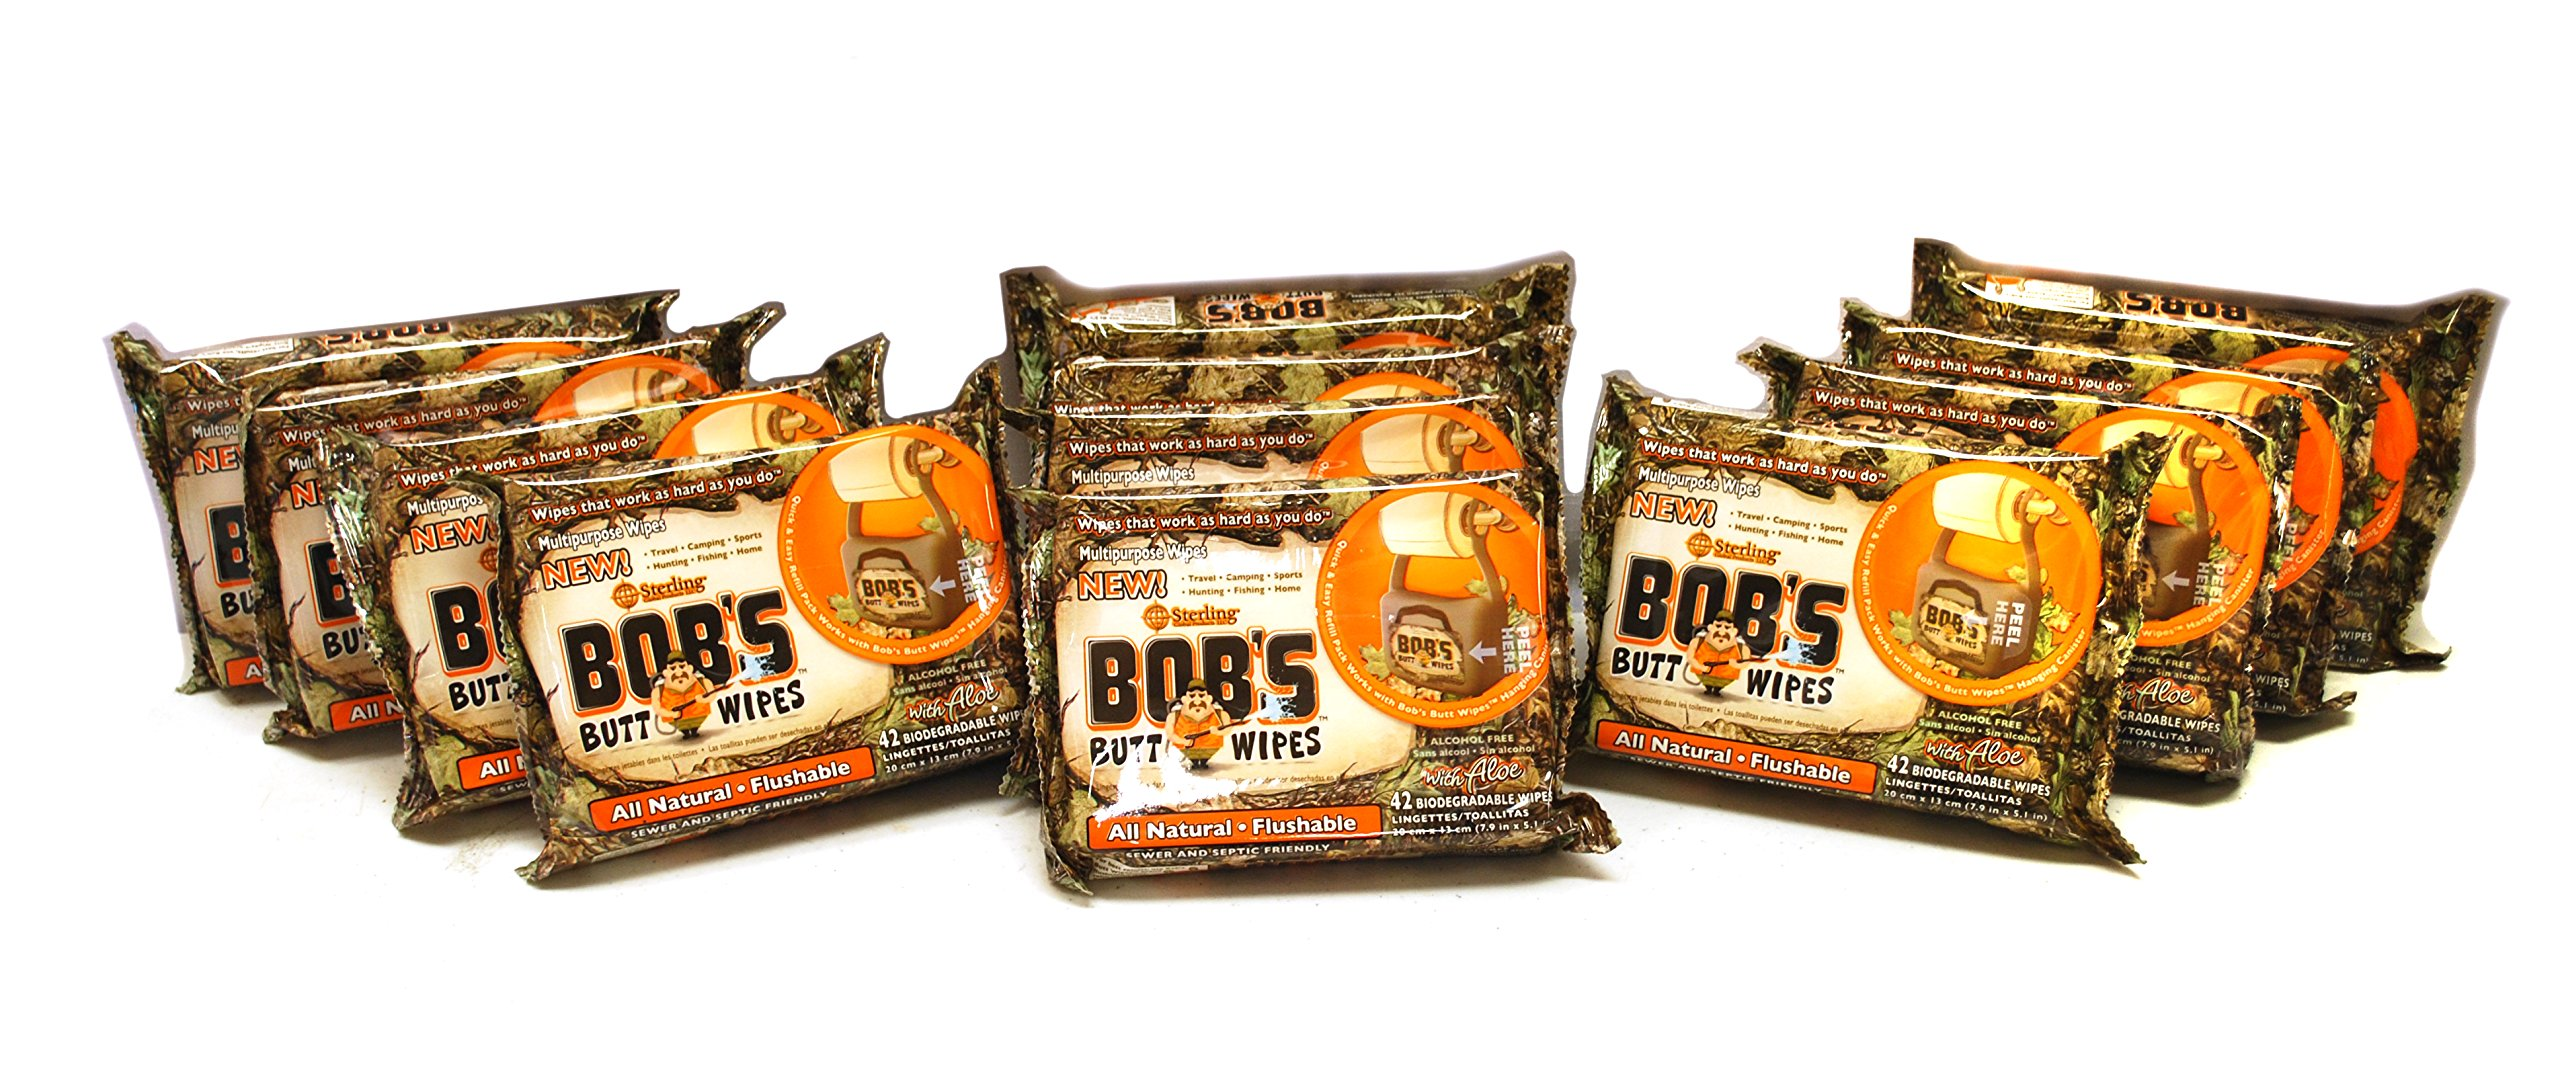 Bob's Butt Wipes 42ct Refill Only, 12 Pack, Unscented Hypoallergenic All-Natural Flushable Wipes